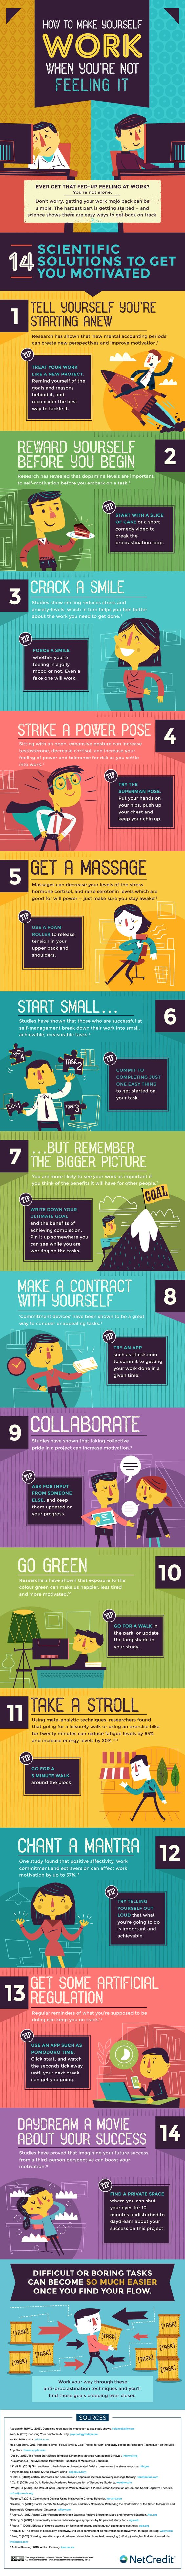 How to Make Yourself Work When You're Not Feeling It #Infographic: